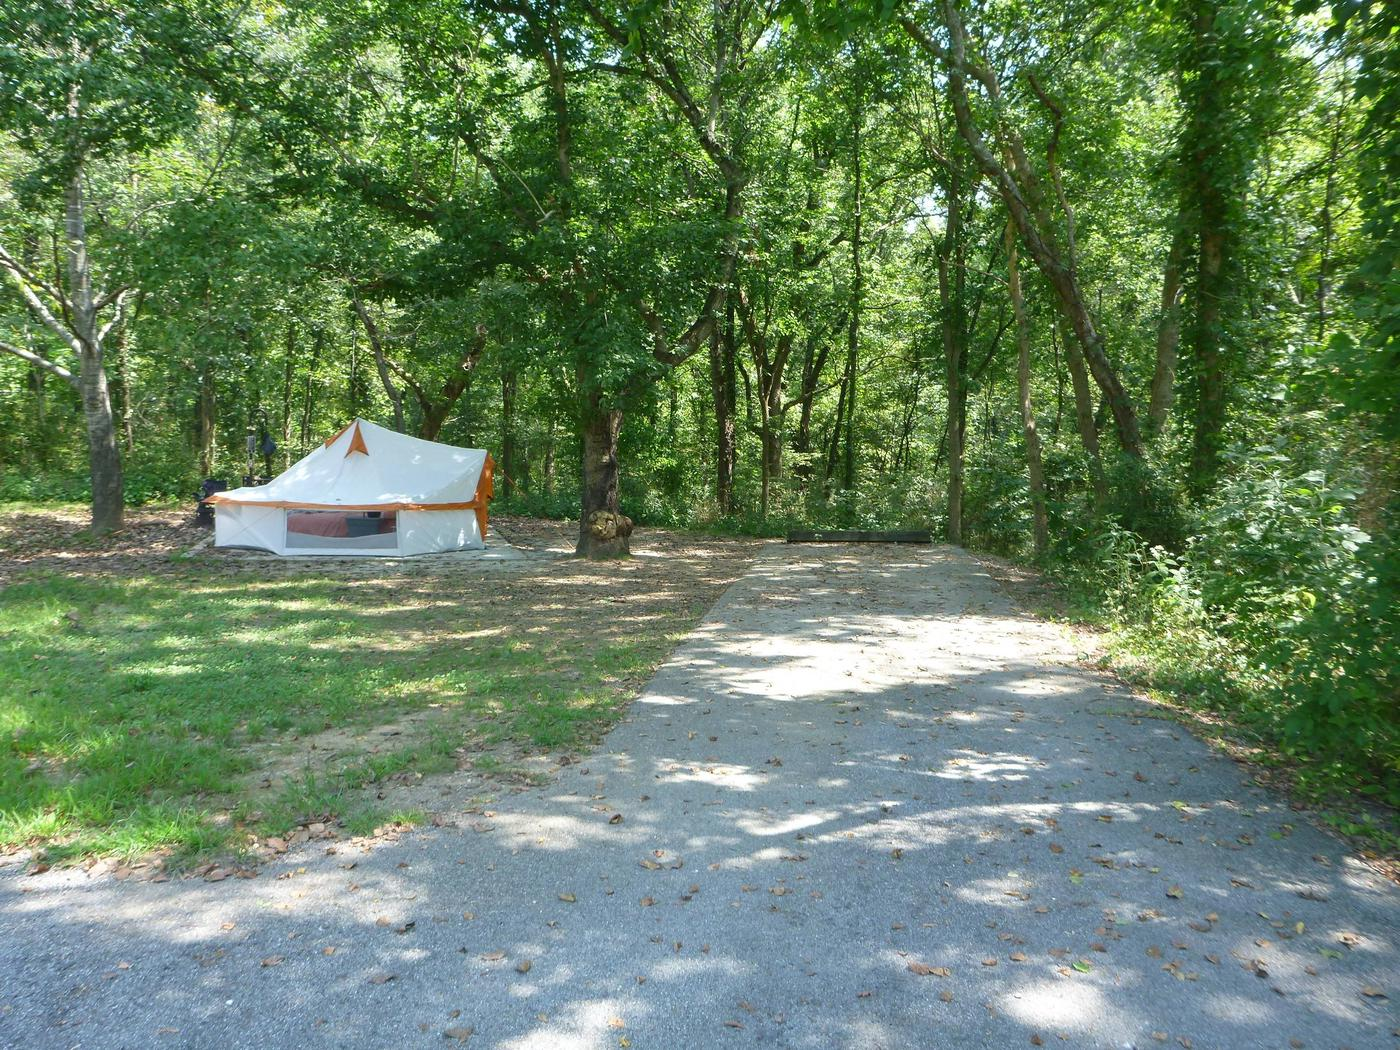 "Tyler Bend Main Loop Site#9-7 Site#9, 54' back-in, tent pad 15' x'15'.( on Right side of picture) Site #10, 43"" back-in, tent pad 15' x 15' (on left side of picture)"